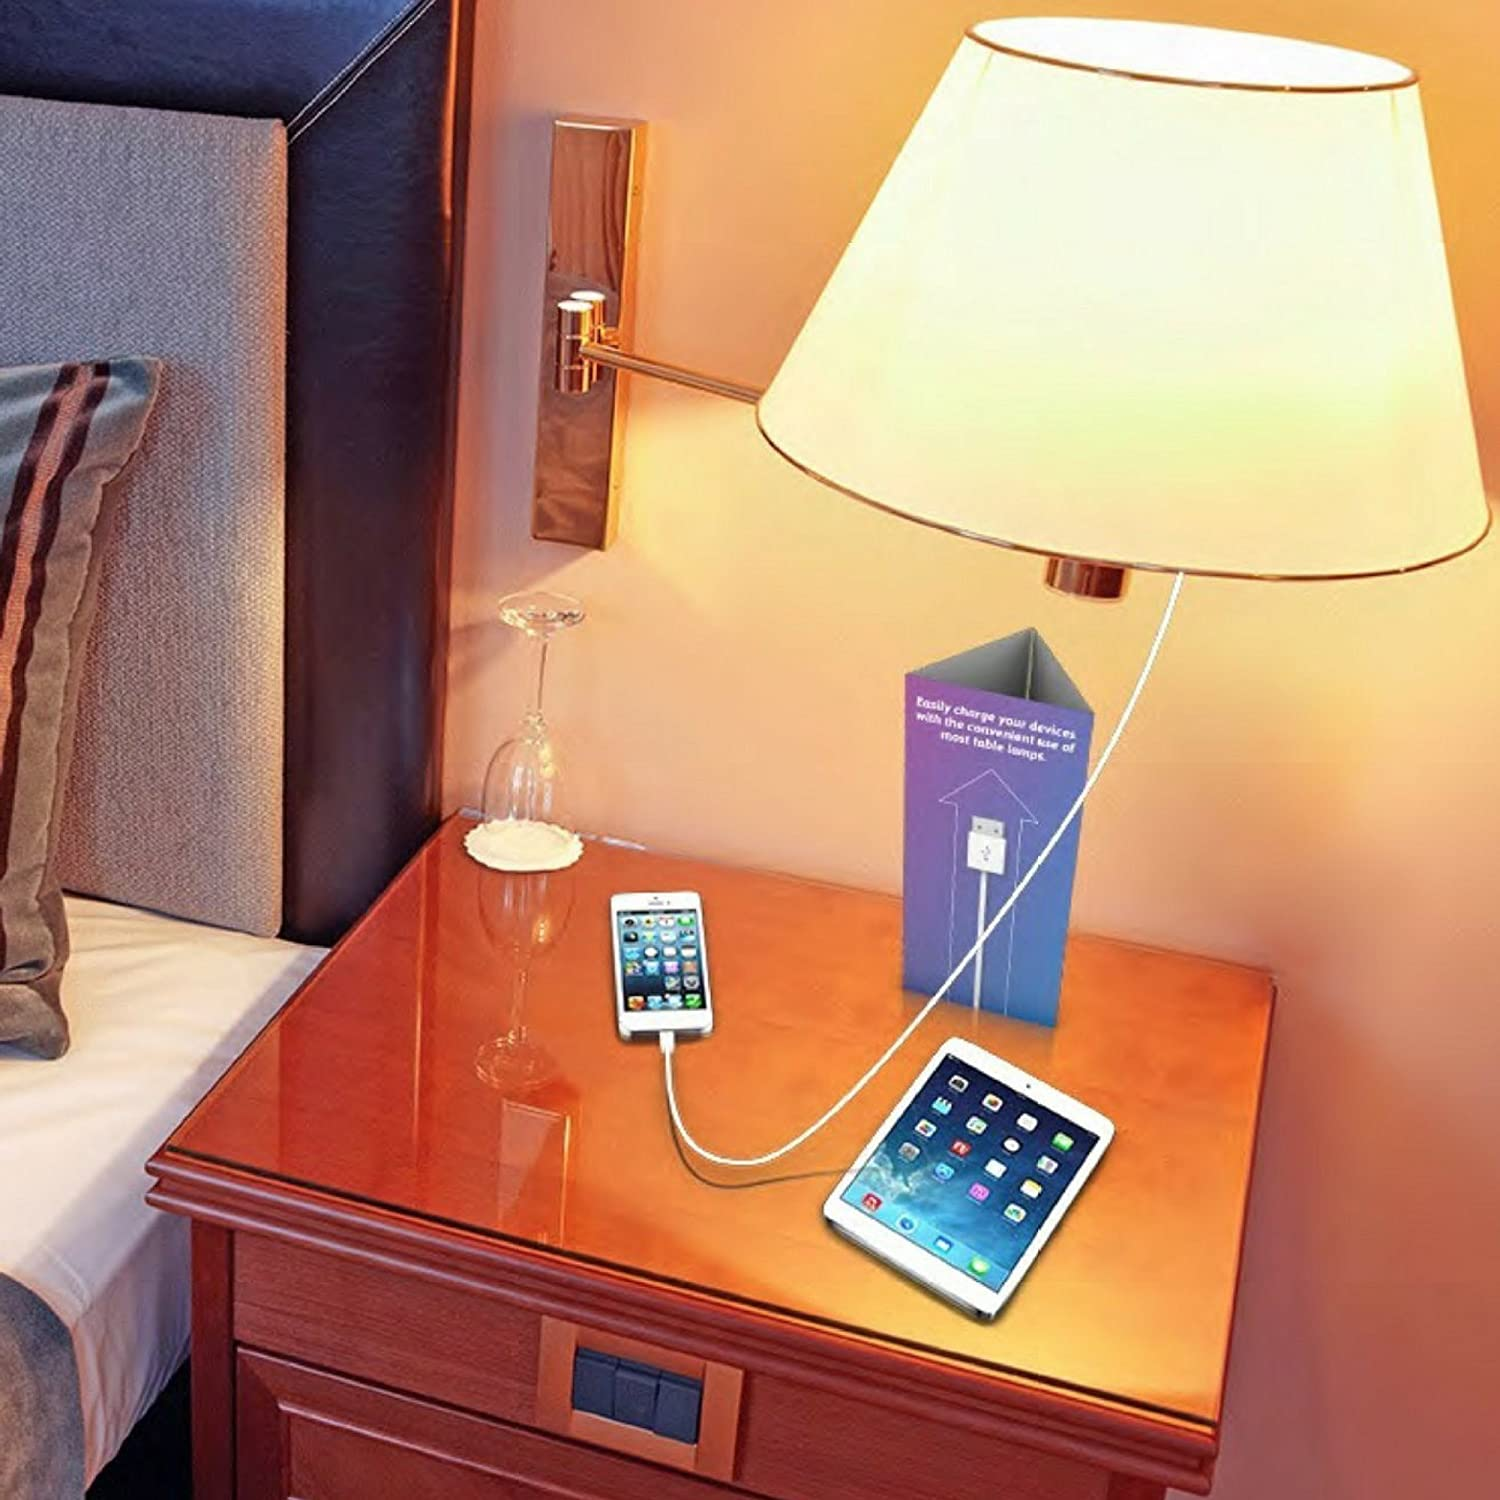 Usb Light Bulb Lampcharger Lamp Adapter And Rechargeable Feed Via The Switch Two Lights How To Wire A Base For Iphone Cell Phones Security Cameras Tablets Ipads 60w Max